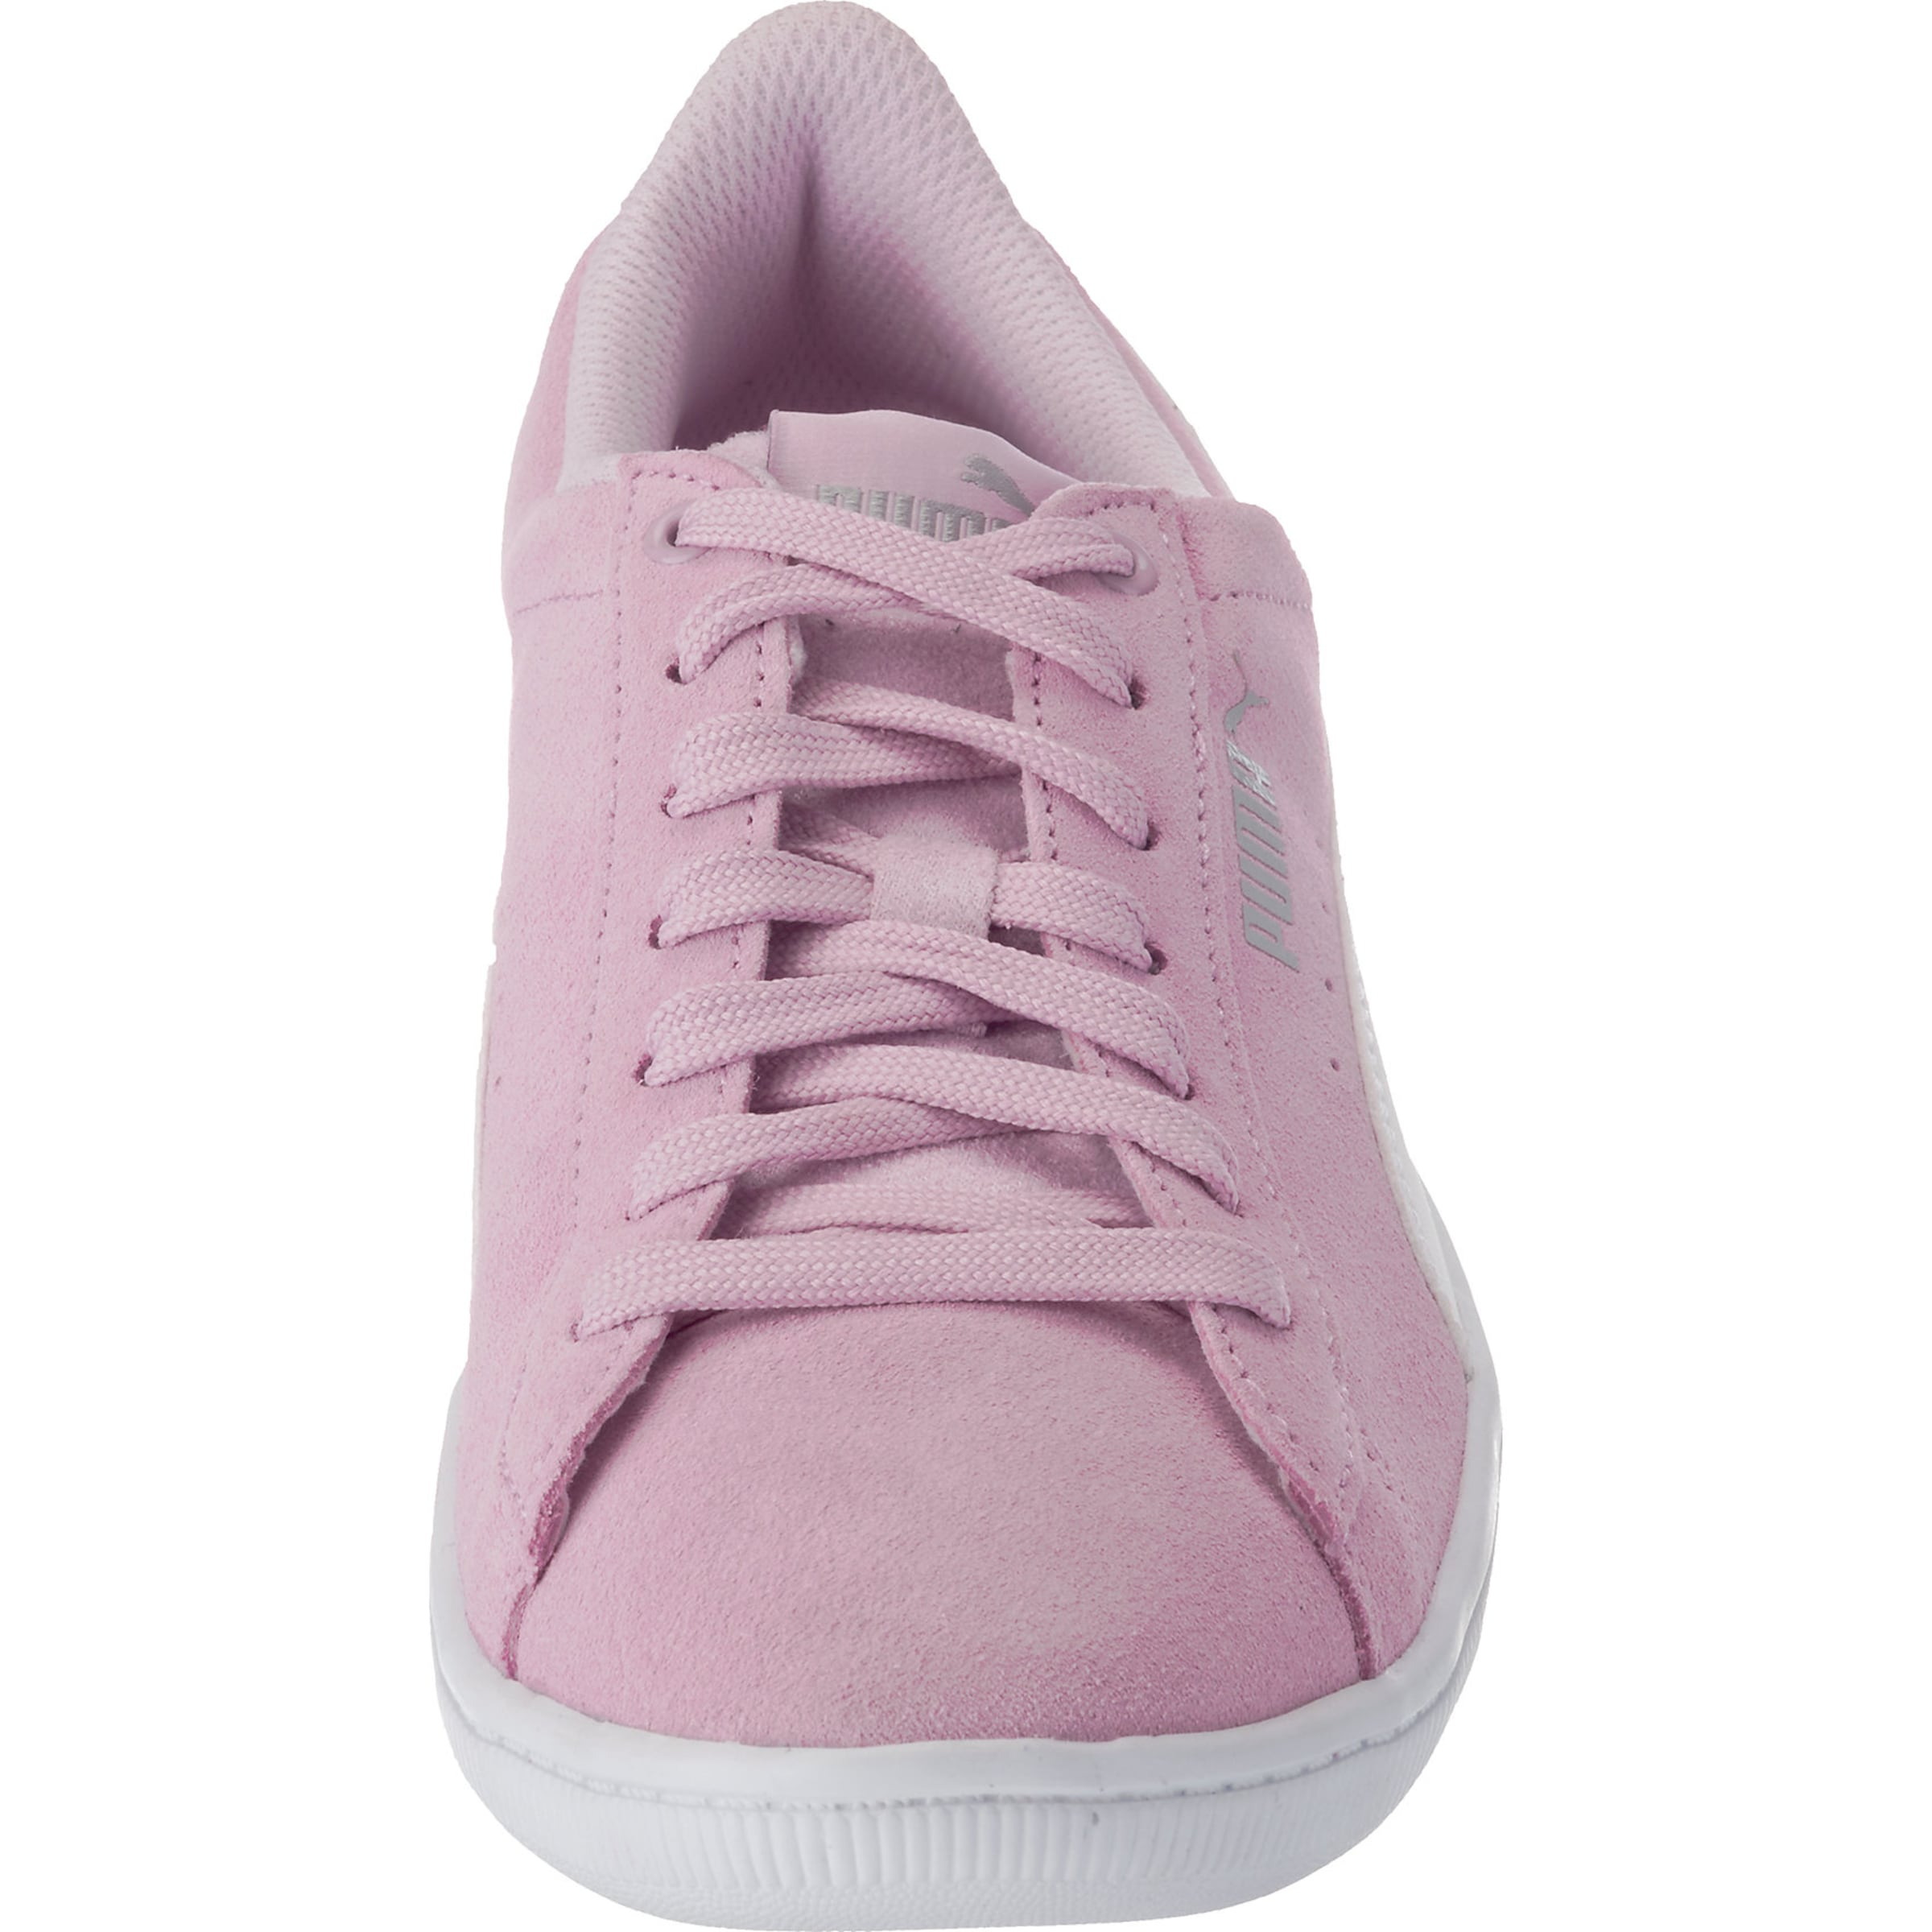 Pink Sneakers Low Puma Sneakers Low Puma In Pink In LMUVSzpGq